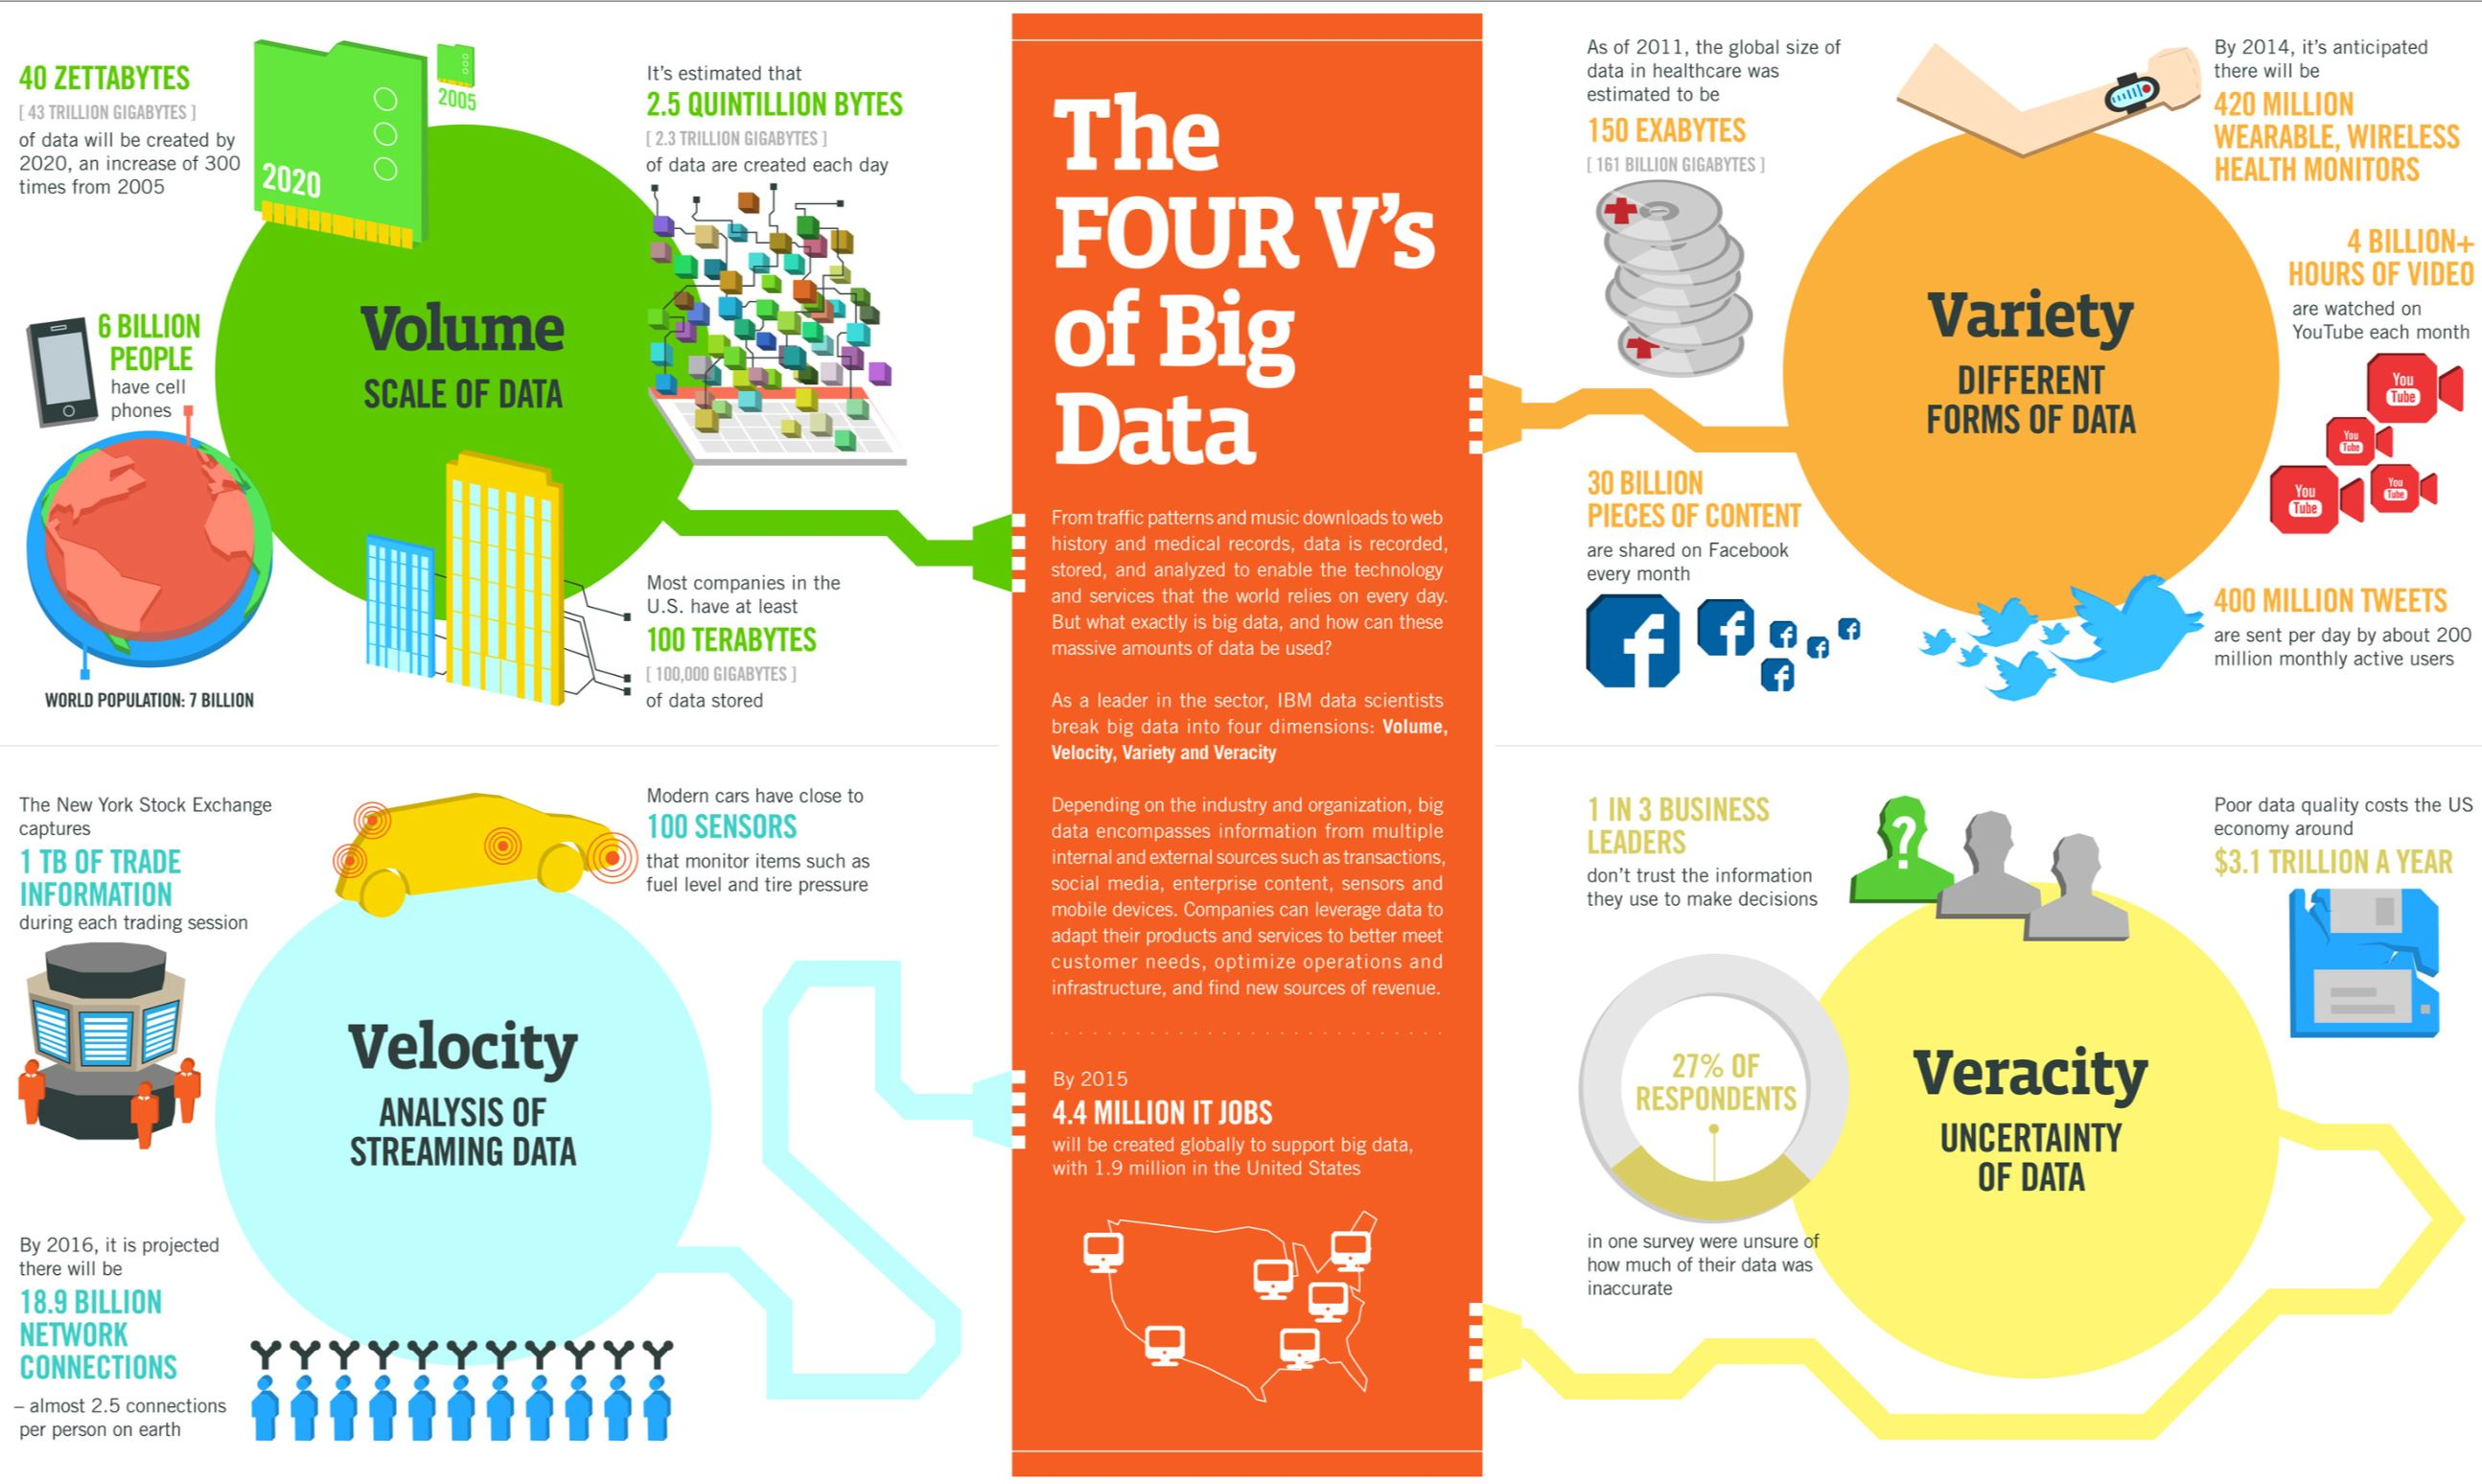 4-vs-of-big-data-proving-big-data-business-value-karim-gabrony-iotroadmap-head-of-products big-data-value-karim-gabrony-digital-tech The Cloud Server and Its Use In Business define internet of everything hp internet of things internet of things europe internet of things graphic internet of things privacy web of things vs internet of things data analytics internet of things internet of things security companies internet of things europe machine to machine learning data analytics growth data analysis technologies big data analytics vendors what are iot applications iot in business best thing on the internet cloud computing and business why use cloud computing technology best cloud computing service the cloud server why use cloud computing technology best cloud computing service the cloud server define cloud computing technology cloud for business use companies cloud computing cloud computing infrastructure as a service cost of cloud computing services how does the cloud computing work best cloud services for business cloud computing email top cloud computing service providers cloud computing server cost best cloud technology cloud computing for small business cloud computing services companies implementation of cloud computing companies that provide cloud services using the cloud for business popular cloud computing services cloud storage computing different cloud computing services cloud computing solution providers cloud computing network biggest cloud computing providers private cloud technology cloud computing players explain cloud technology cloud and business best cloud hosting services cloud computin cloud computing firms leaders in cloud computing cloud hosting companies cloud computing services providers latest cloud computing technologies internet cloud services cloud technology companies cloud computing services for small business clould computing cloud computing website cloud computung cloud hosting provider with cloud computing where is the software locat